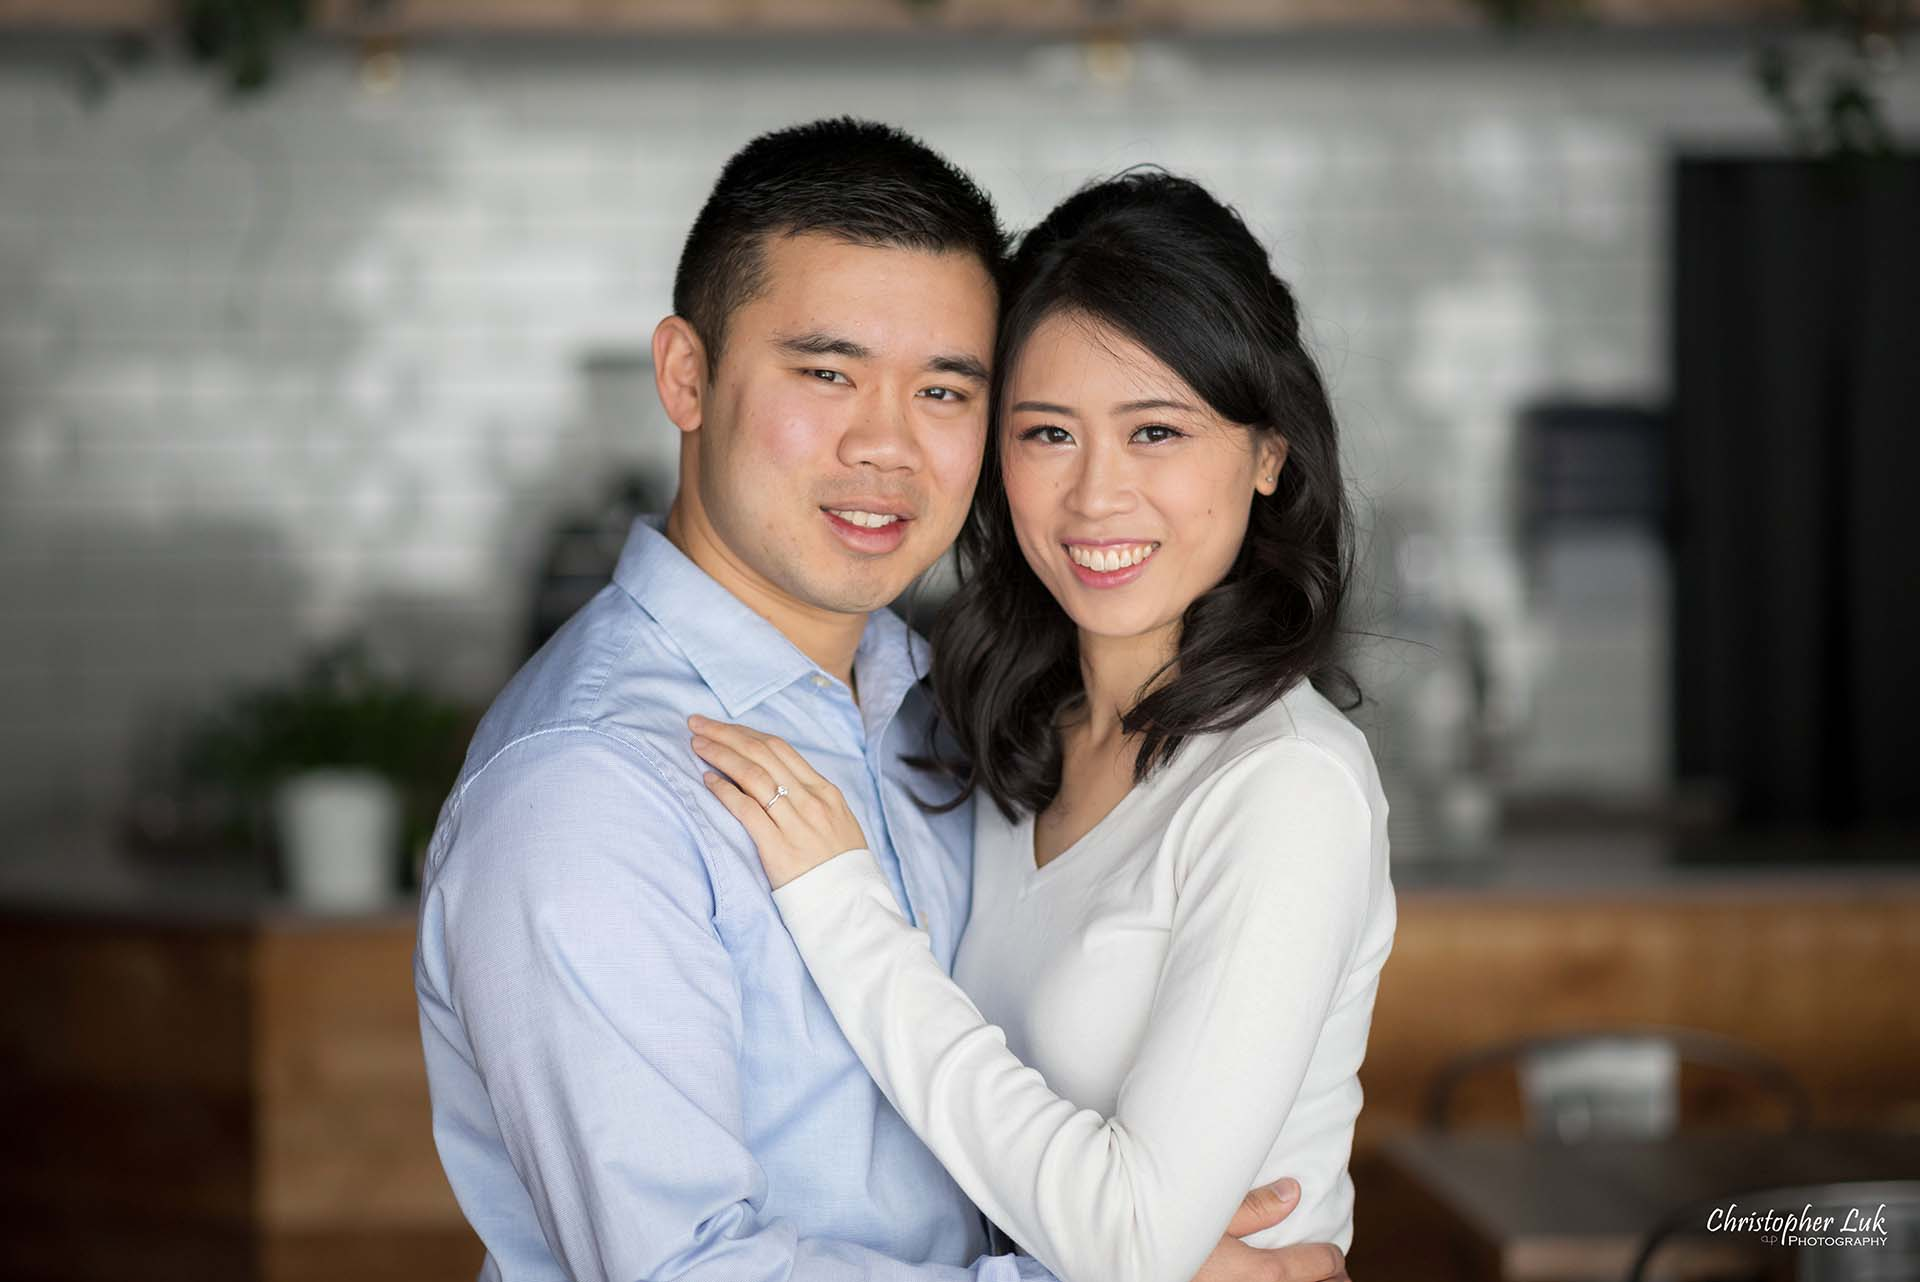 Christopher Luk Toronto Wedding Photographer - Richmond Hill Markham York Region Cafe Coffee Shop Bistro Winter Indoor Engagement PreWedding Natural Candid Photojournalistic Bride Groom Smile Camera Together